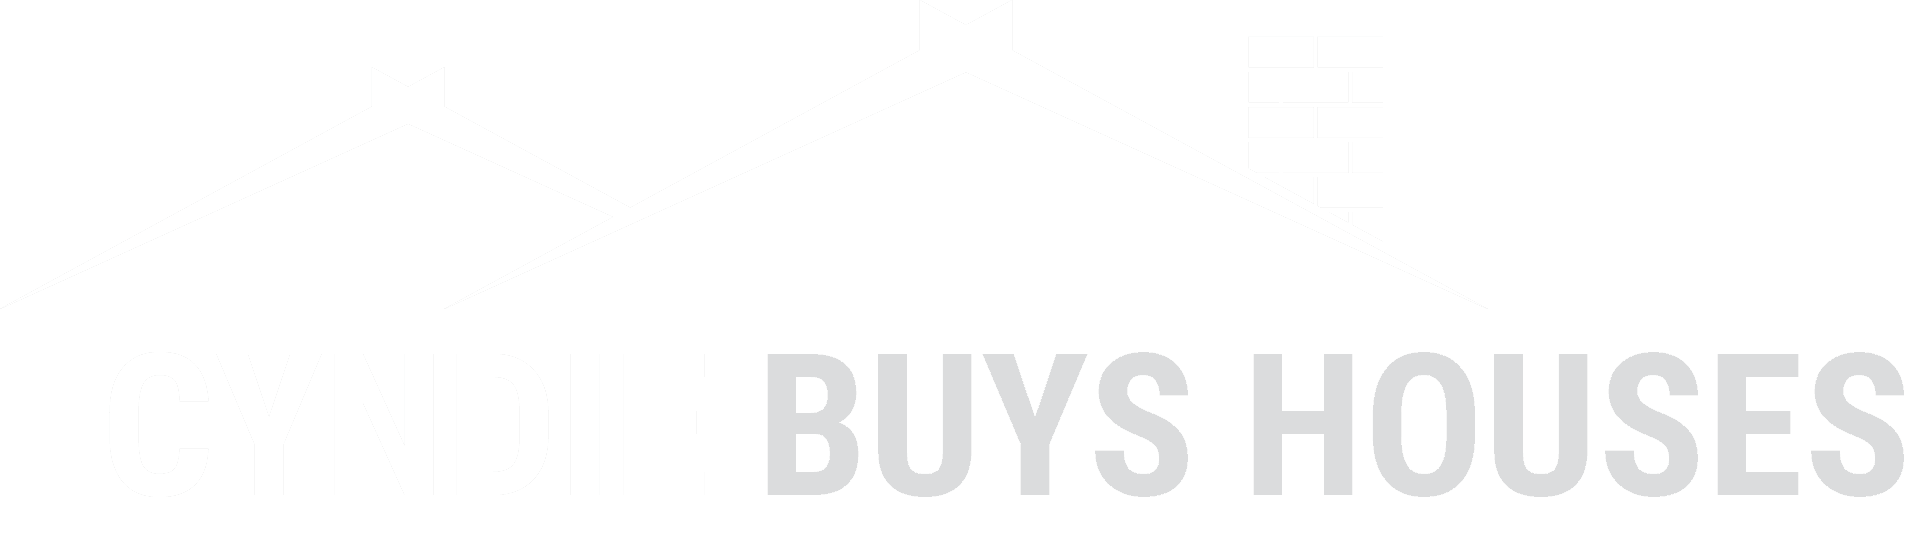 We Buy Houses In California logo